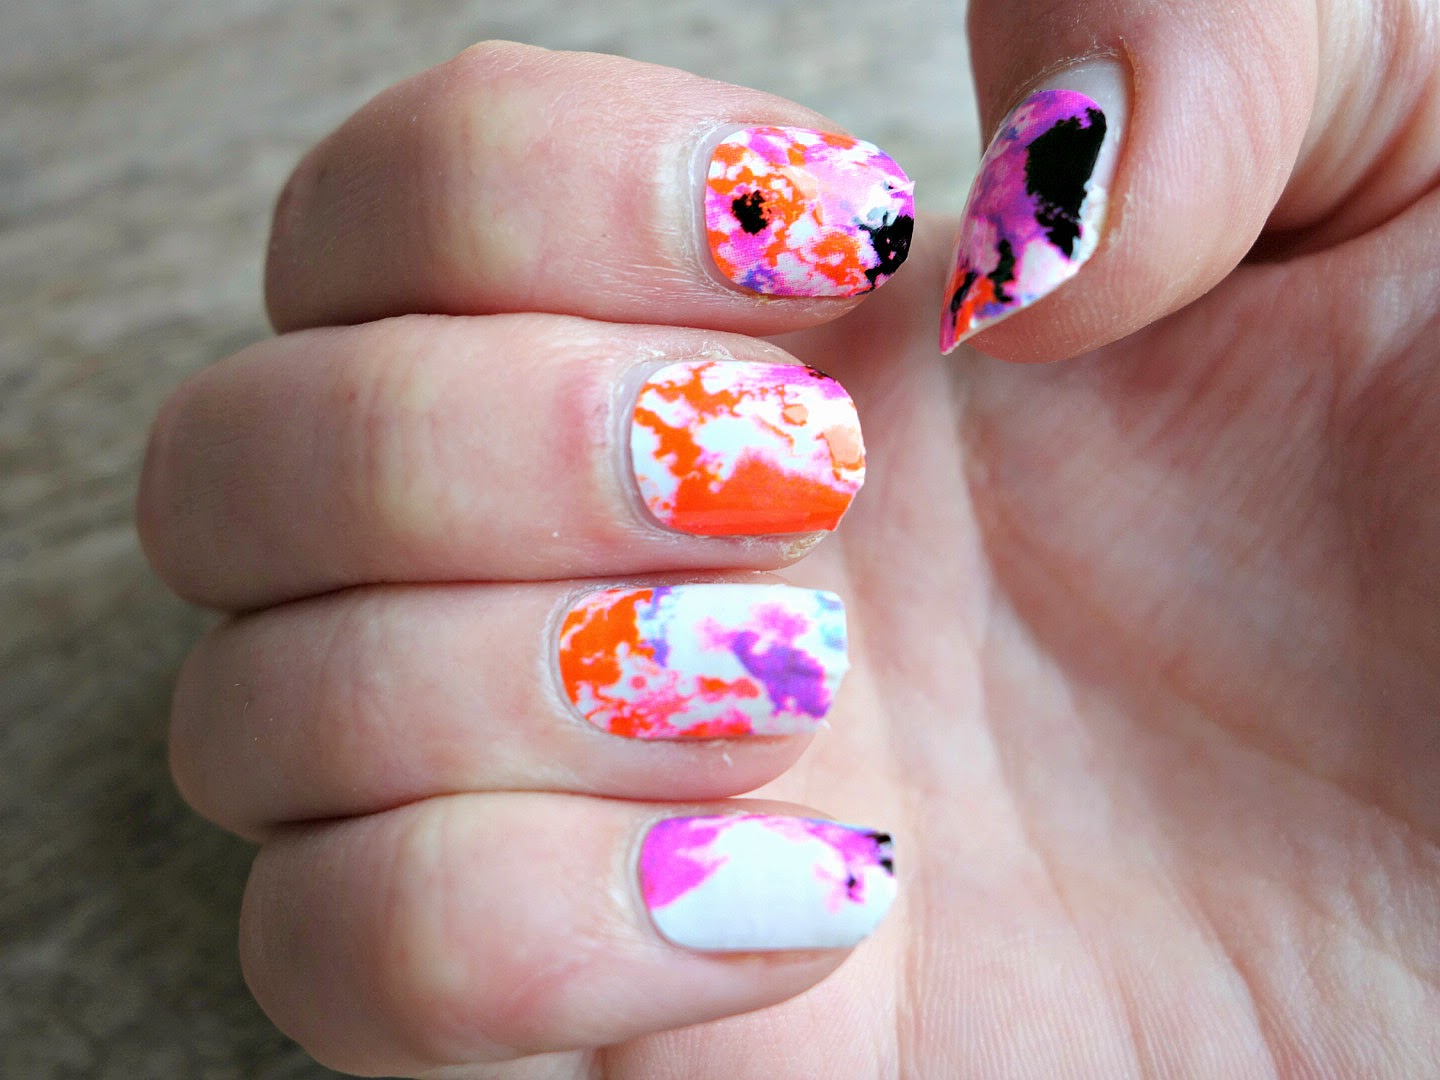 Nails Loral Color Riche Le Nail Art Nagel Stickers Mira Tells